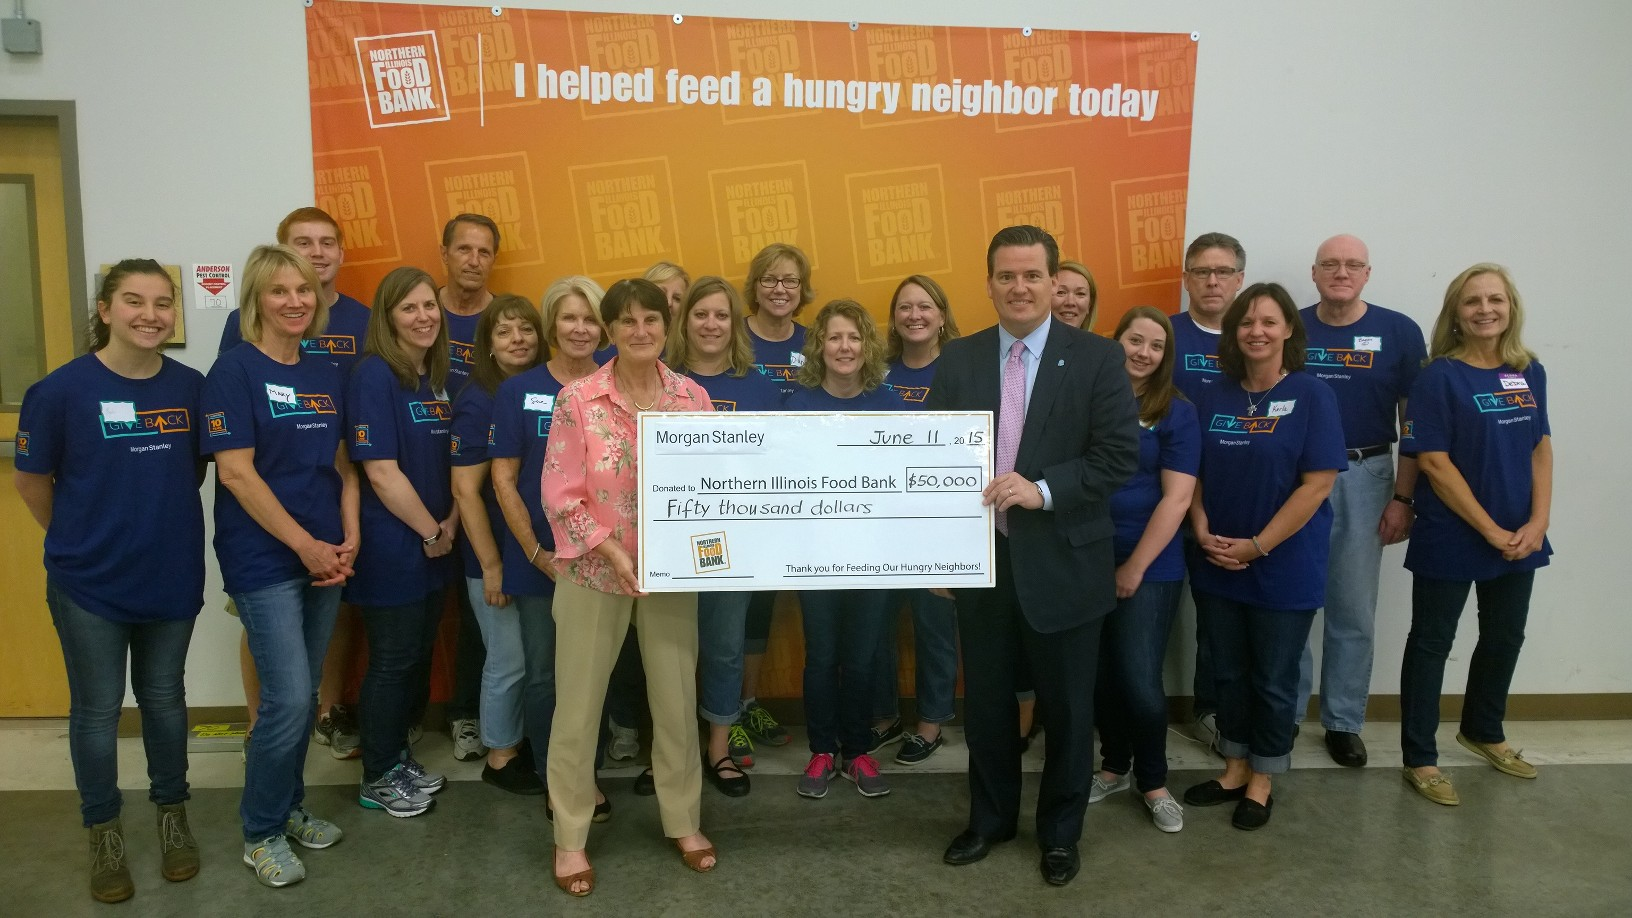 Morgan Stanley Grant Supports Food Bank S School Pantry